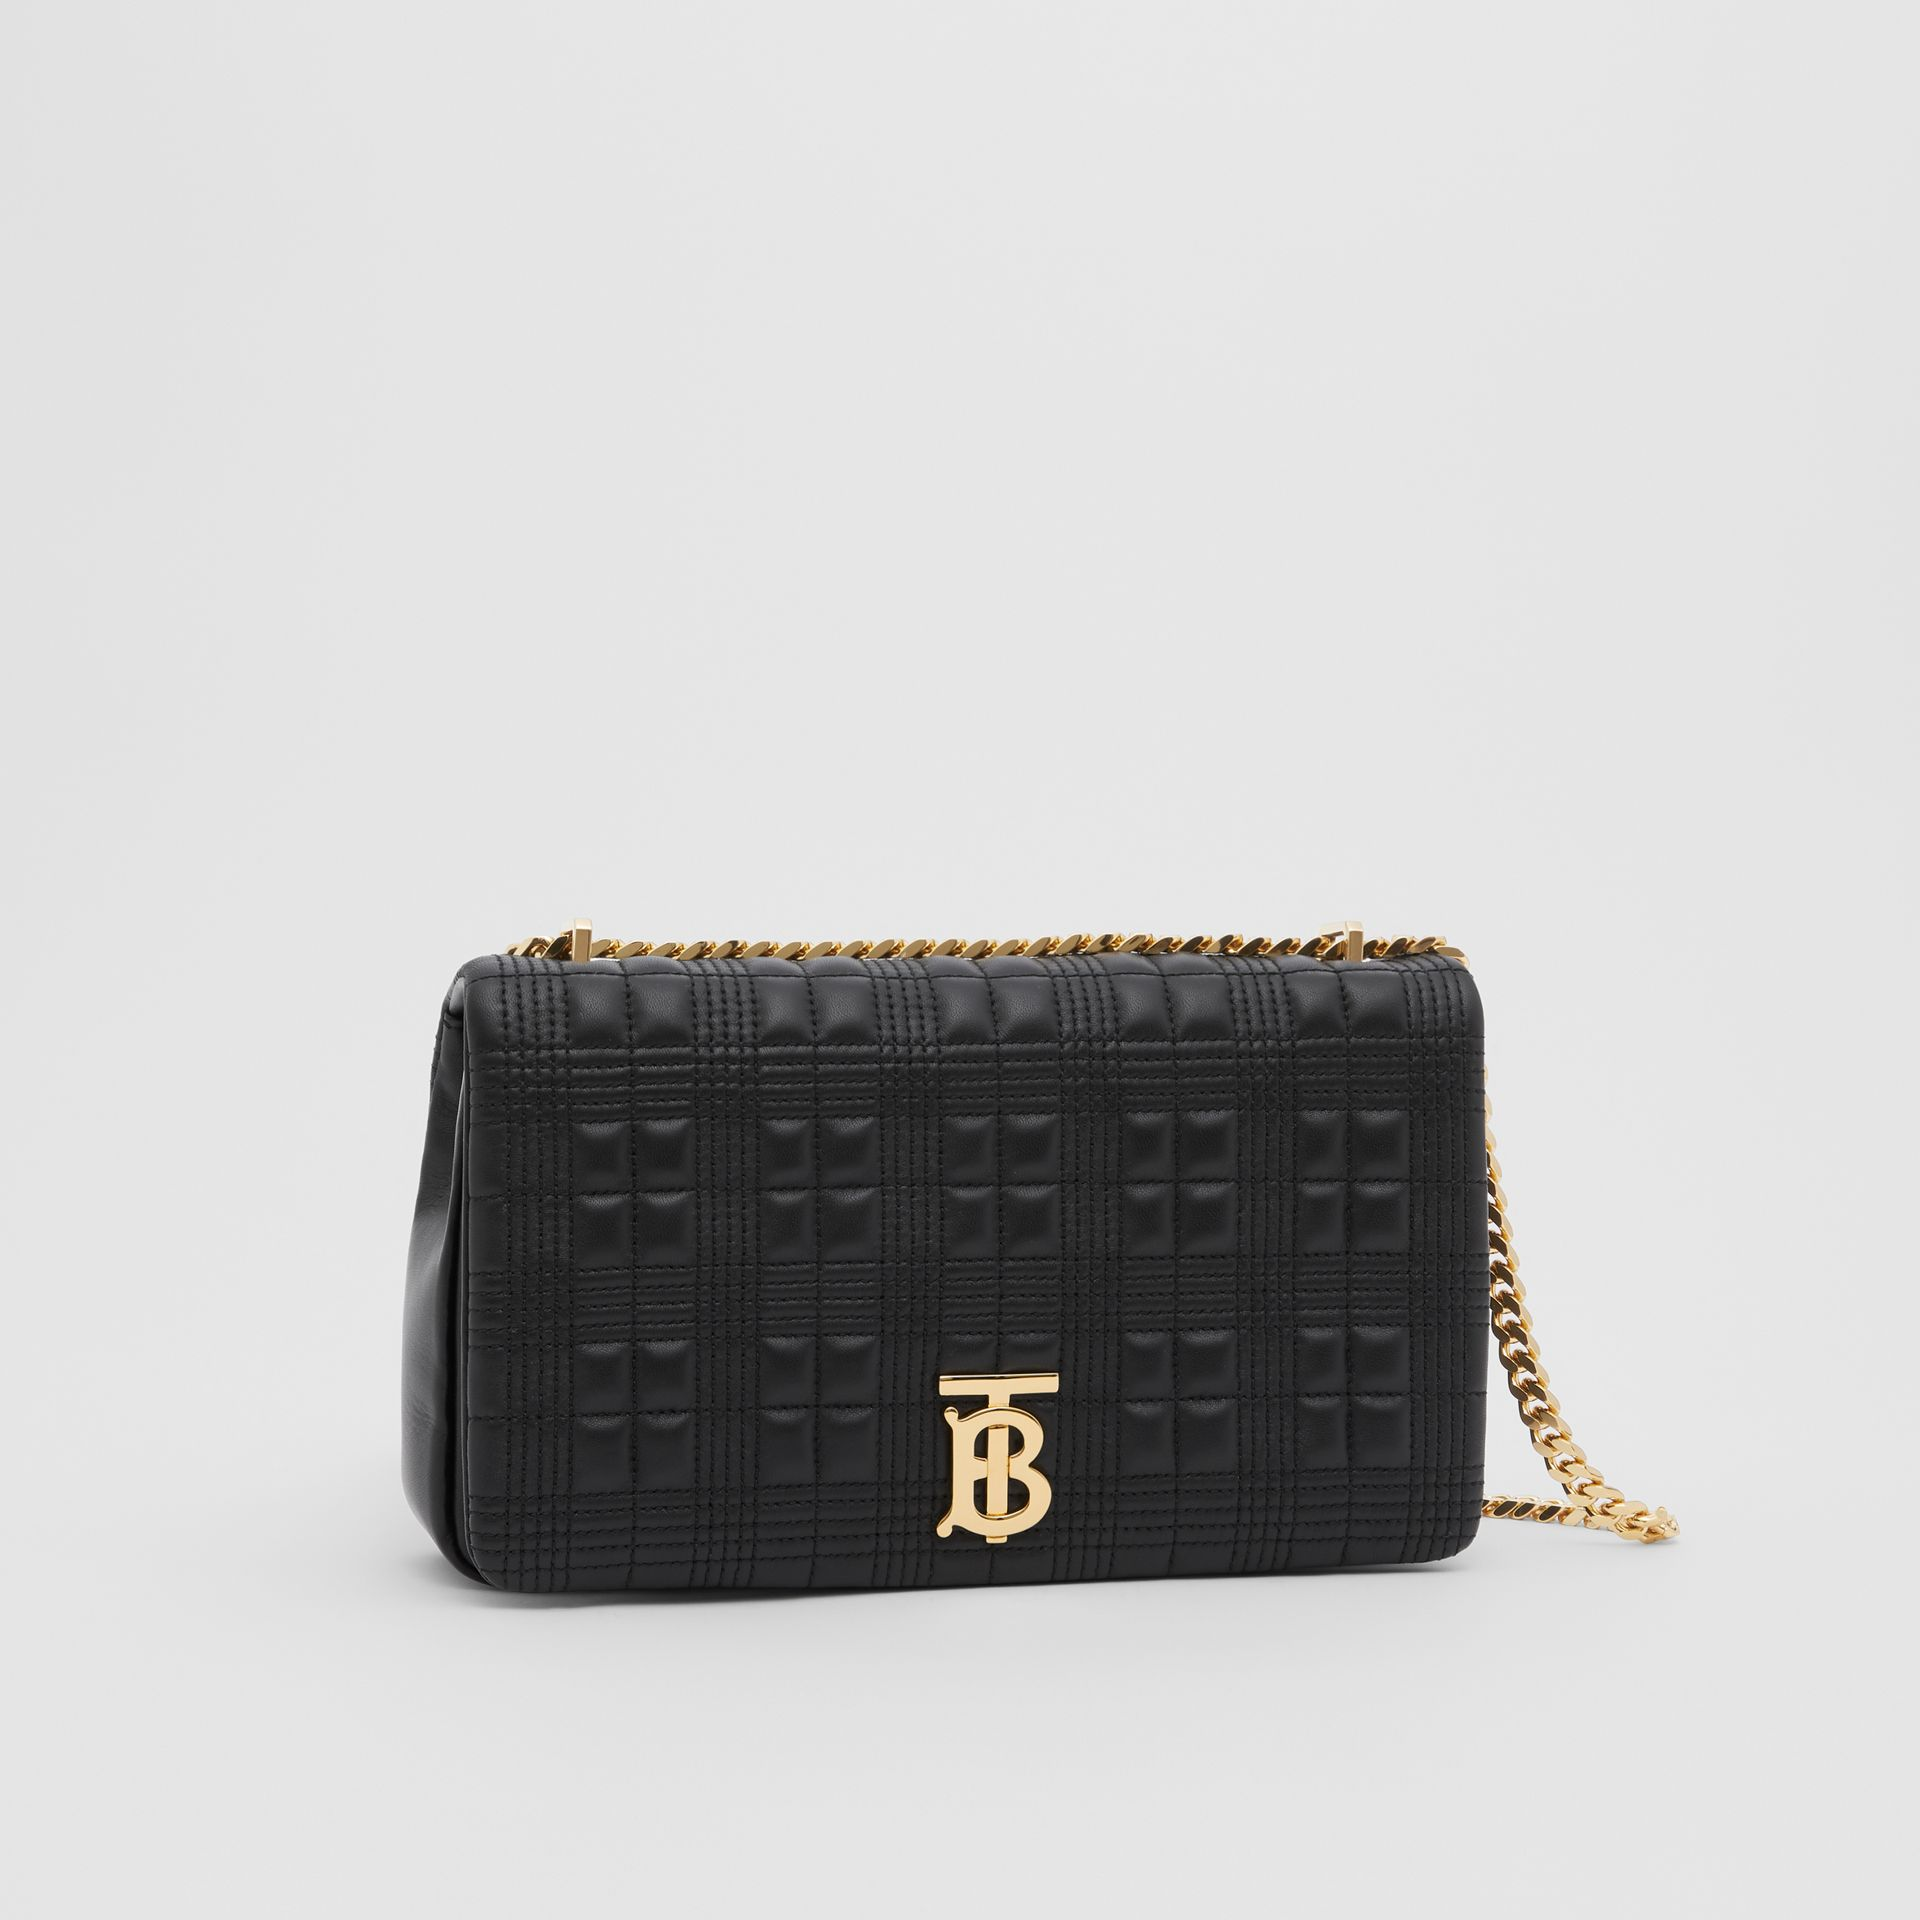 Medium Quilted Lambskin Lola Bag in Black - Women | Burberry - gallery image 6